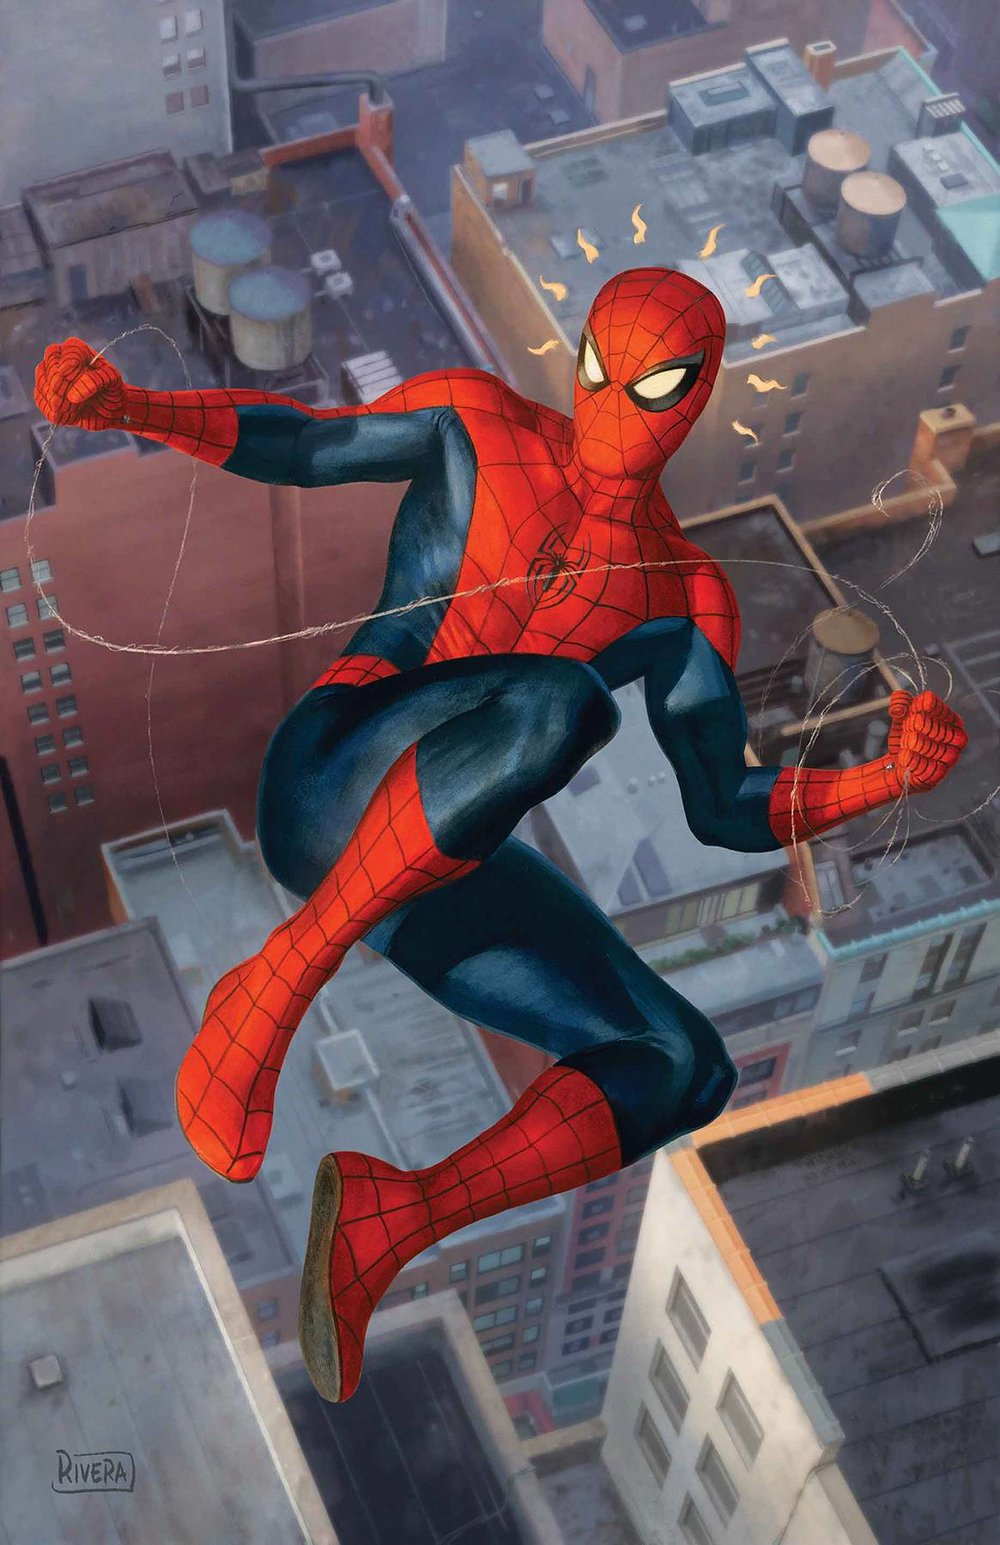 AMAZING SPIDER-MAN BY RIVERA POSTER.jpg